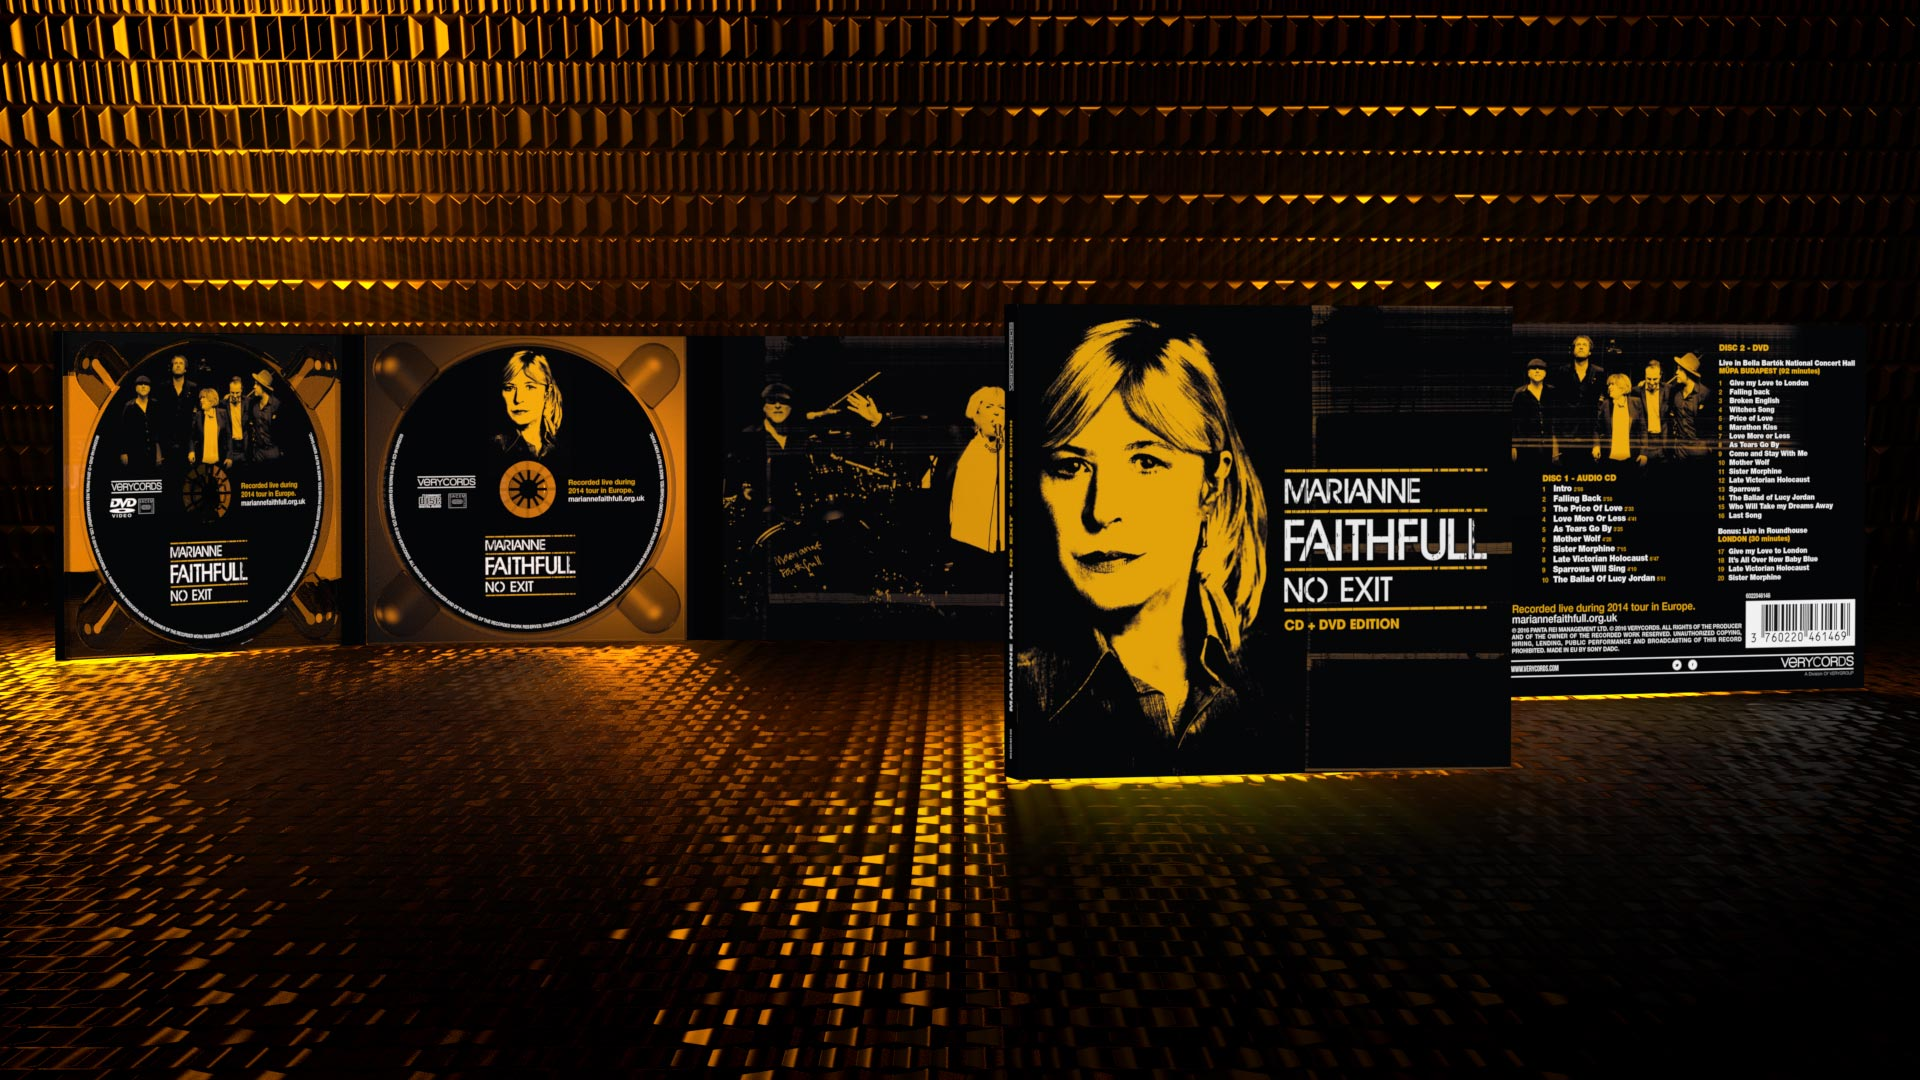 marianne faithfull 50th anniversary tour